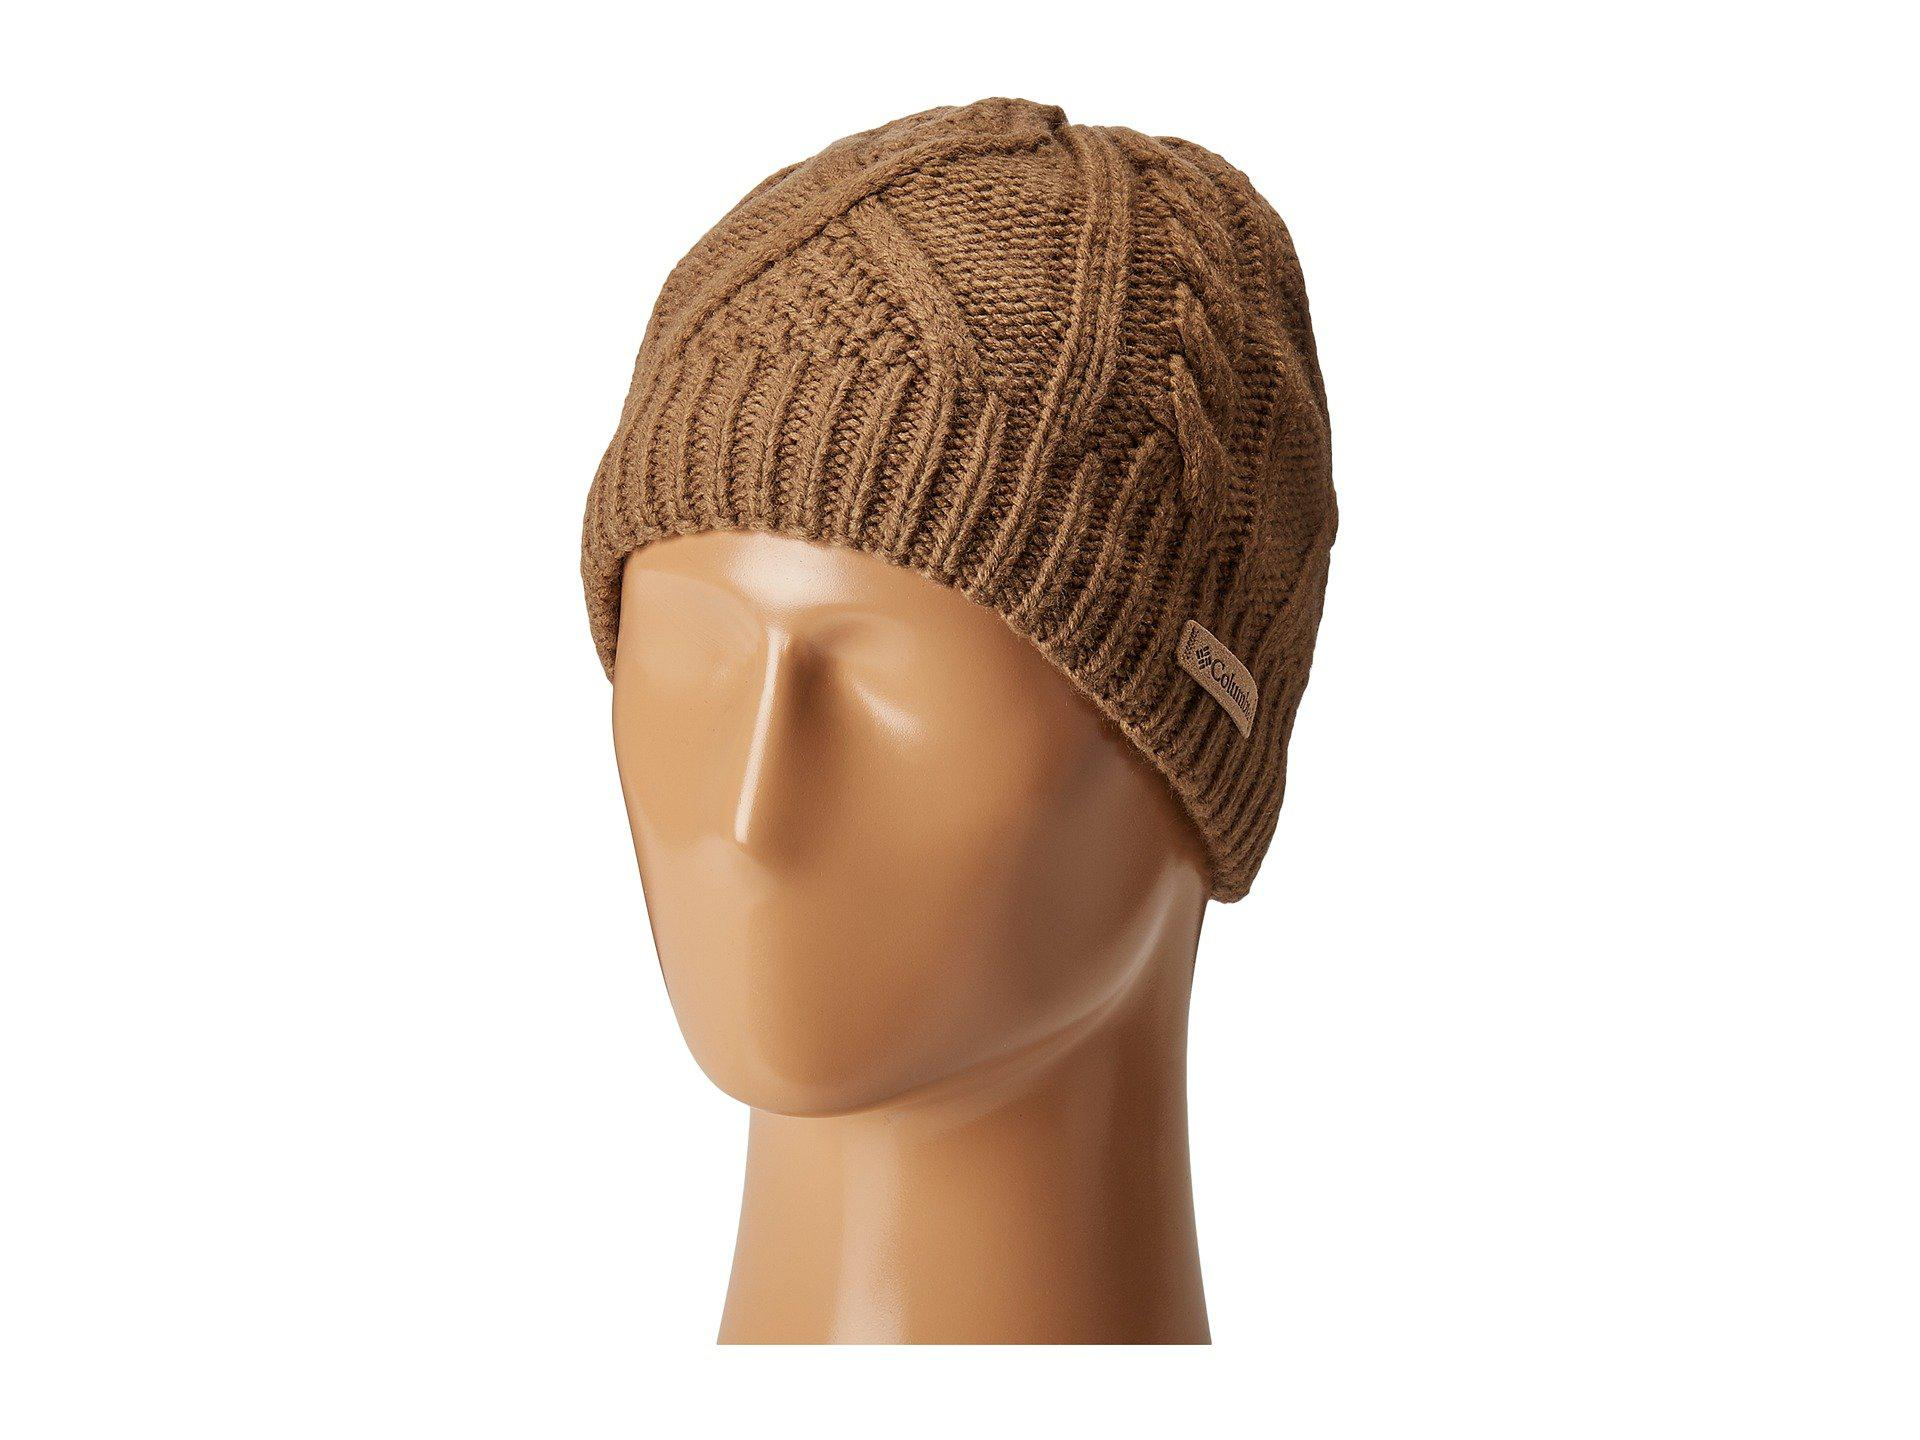 780d68a9aa1 Lyst - Columbia Cabled Cutietm Beanie (truffle) Beanies in Brown